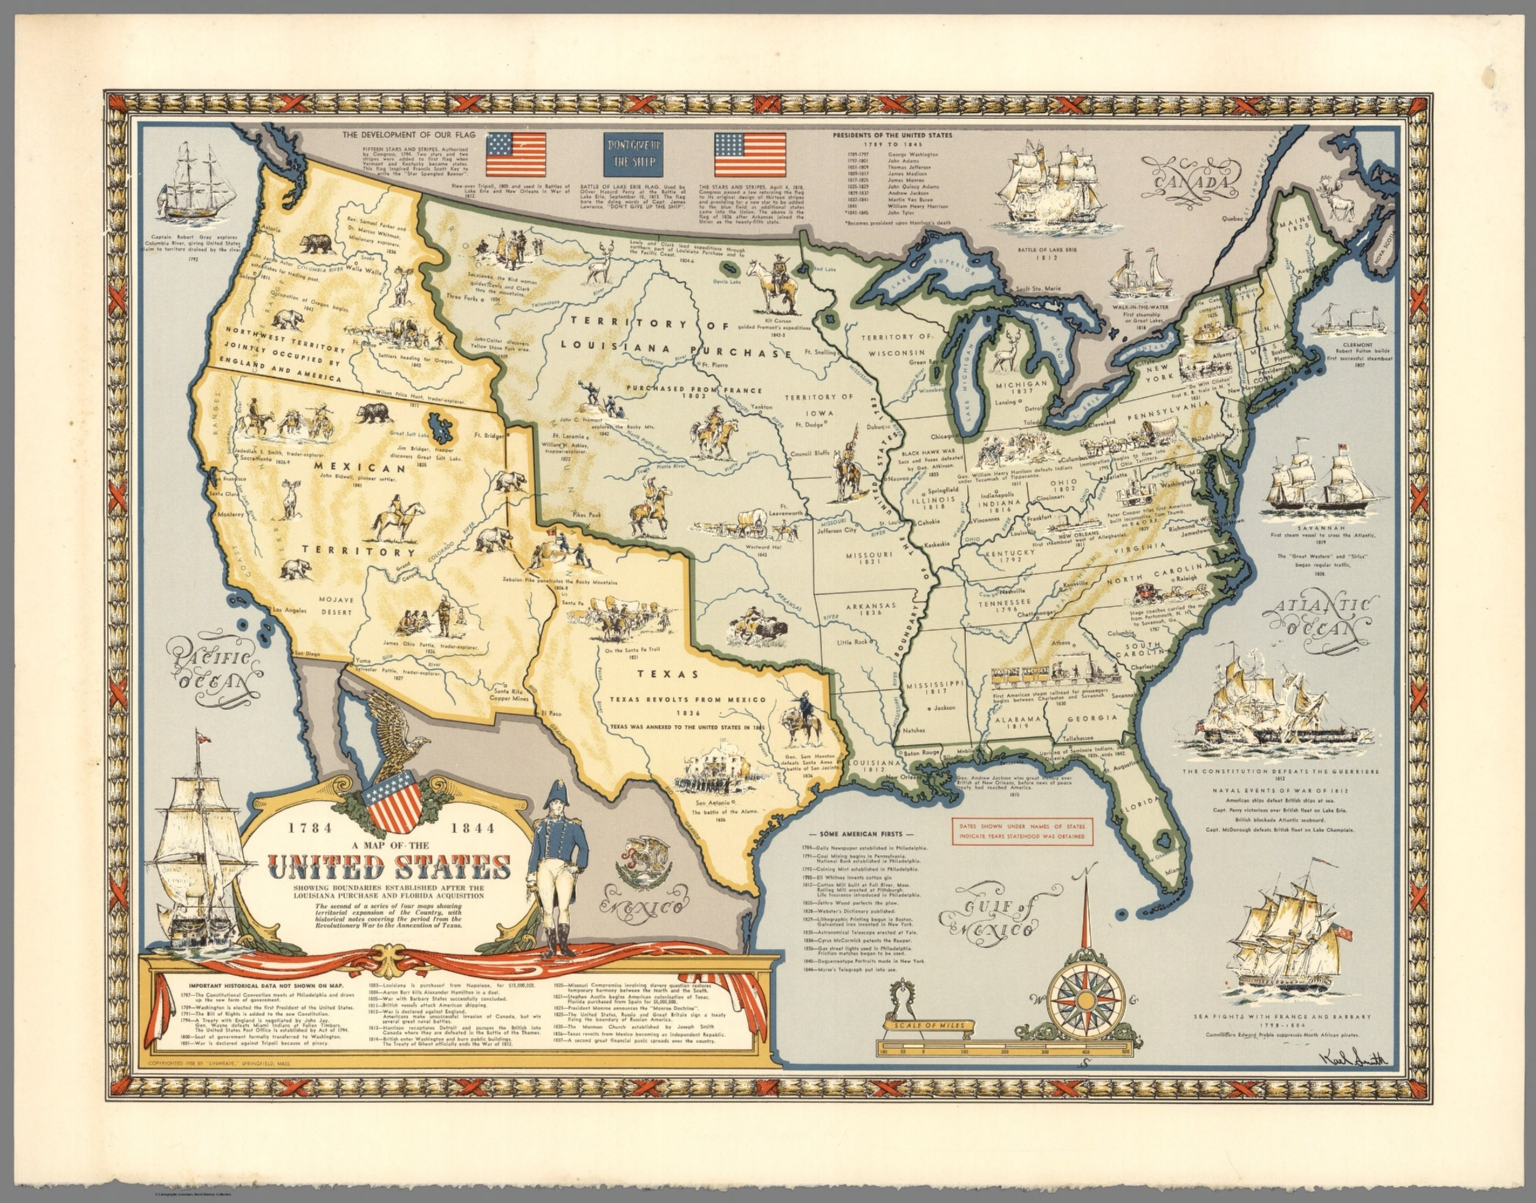 Map of the United States Showing Boundaries, 1784-1844. - David ...